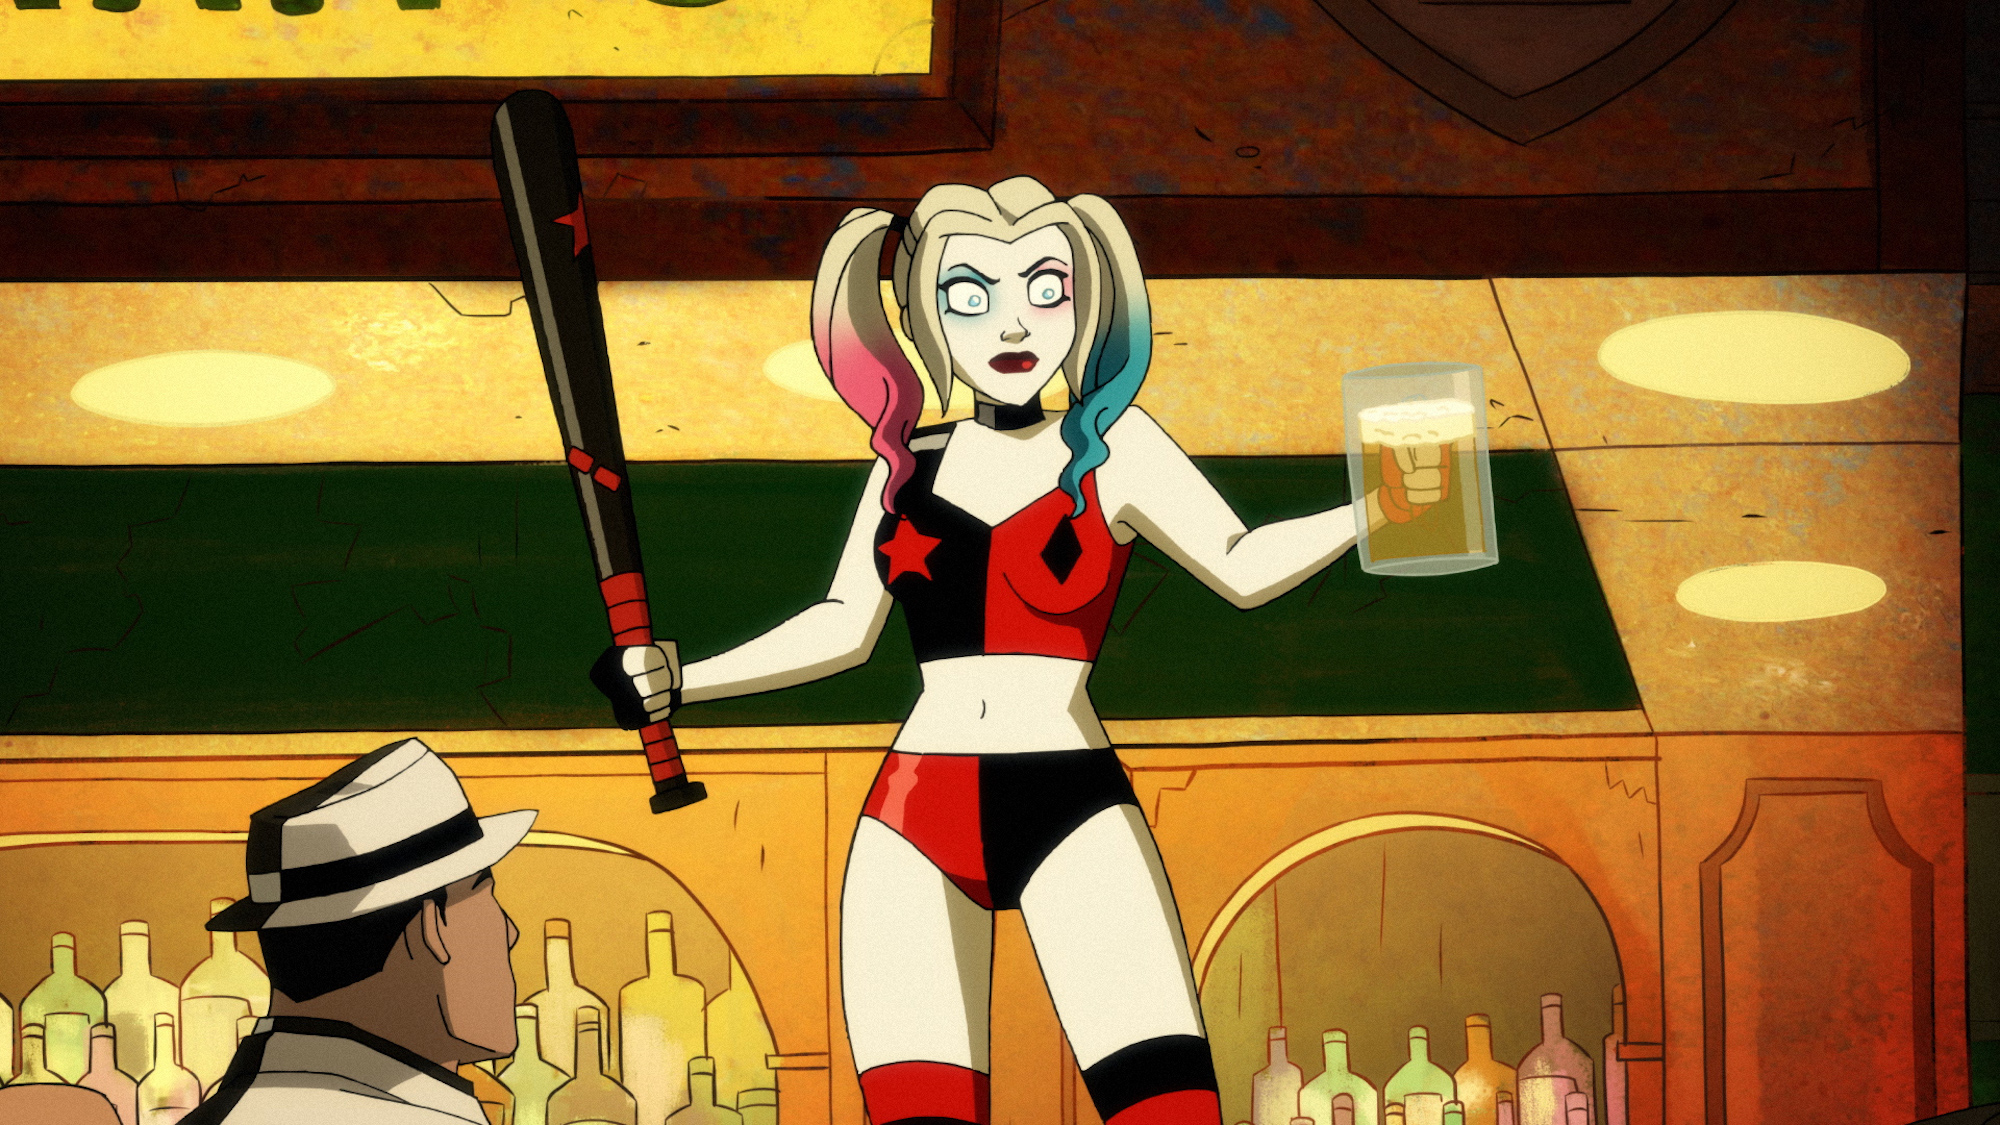 Harley Quinn in Season 2.